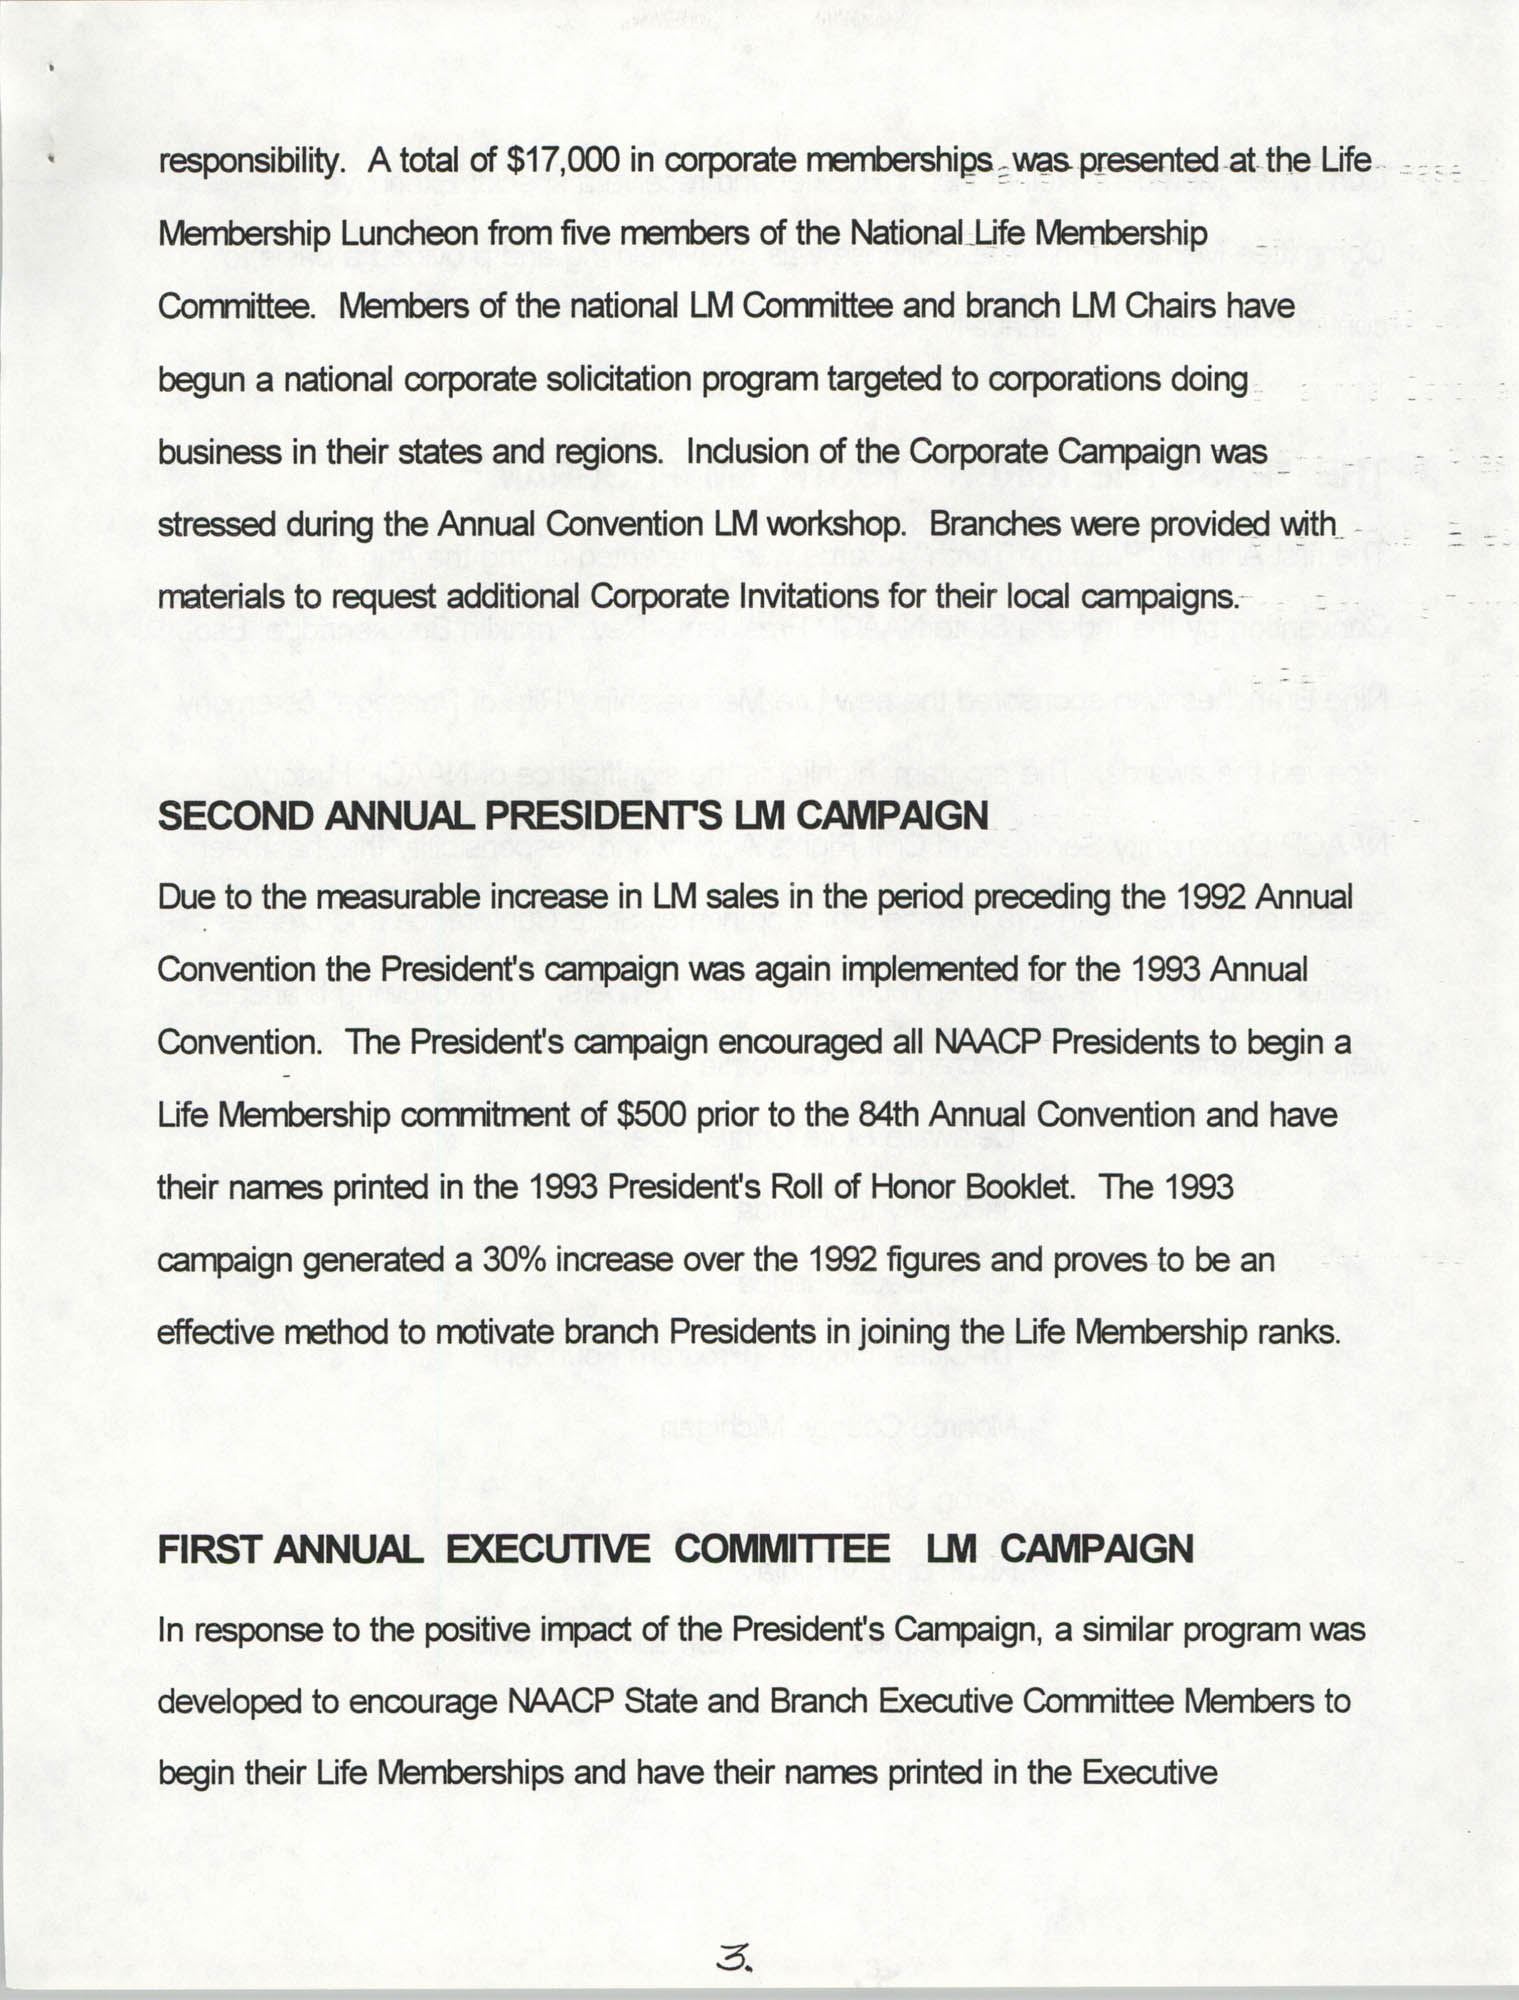 Life Membership Division, 1993 Annual Report, Page 3